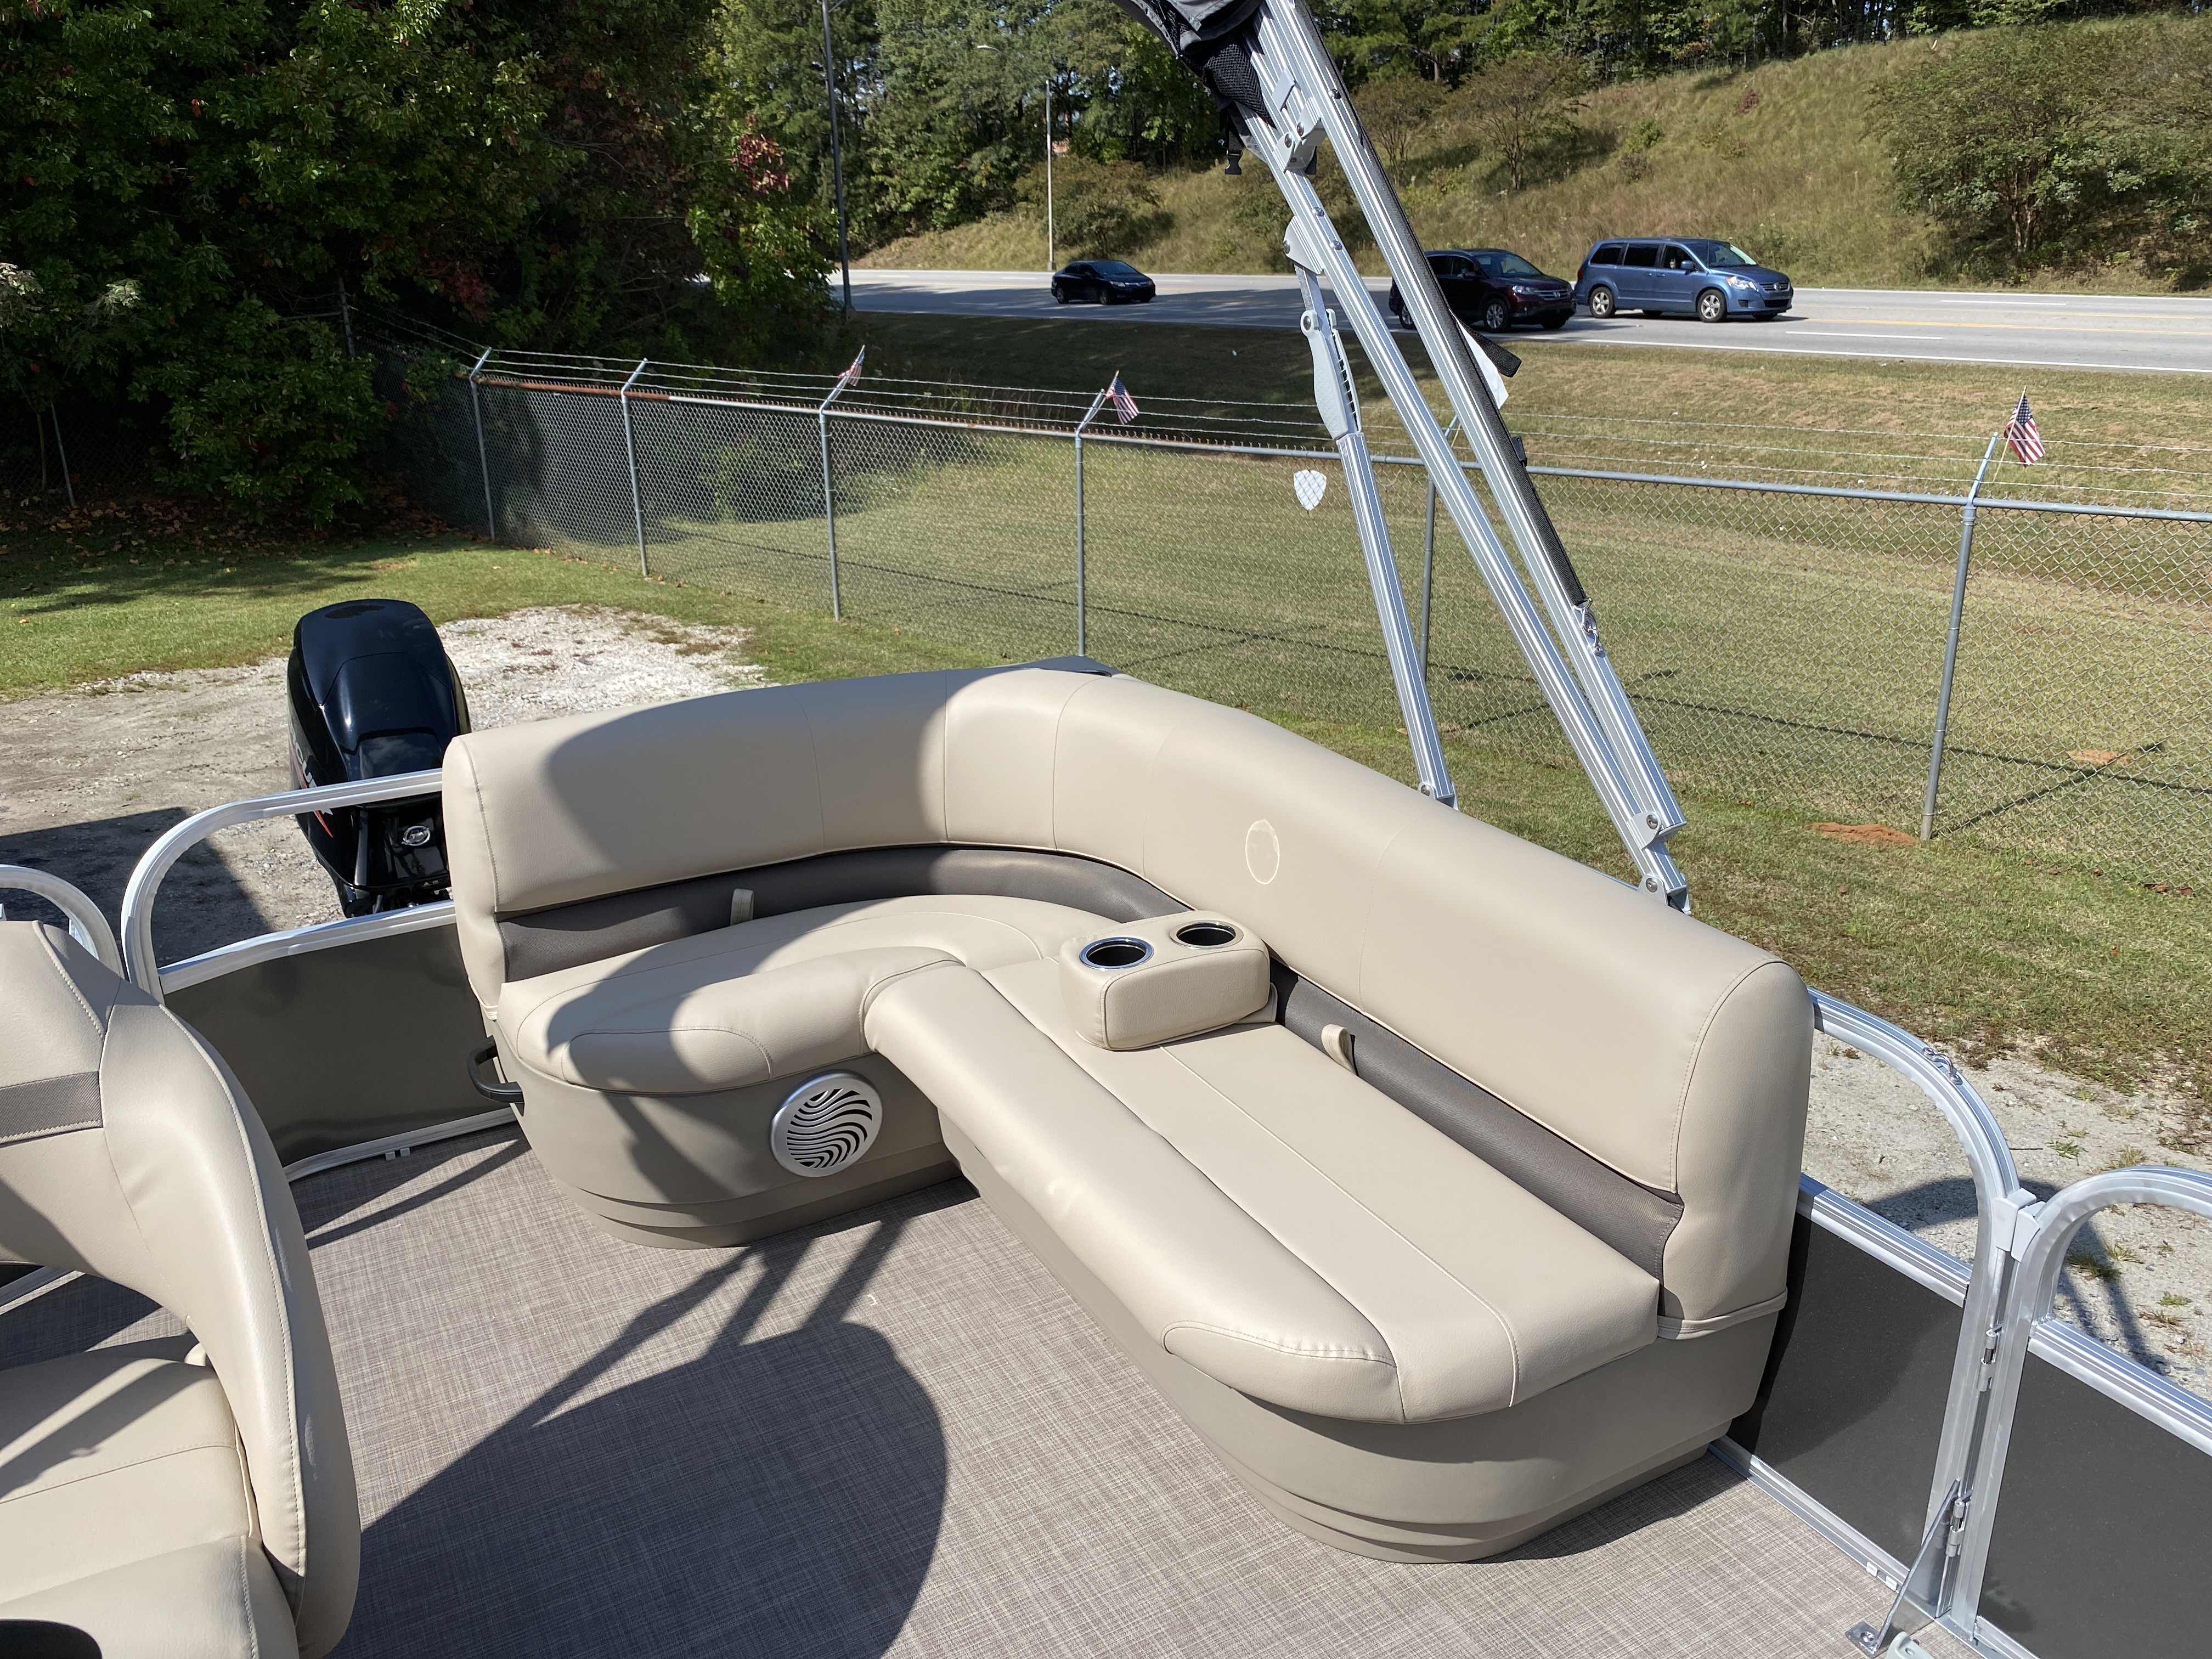 2021 Sun Tracker boat for sale, model of the boat is Party Barge 18 w/60ELPT 4S CT & Image # 10 of 50